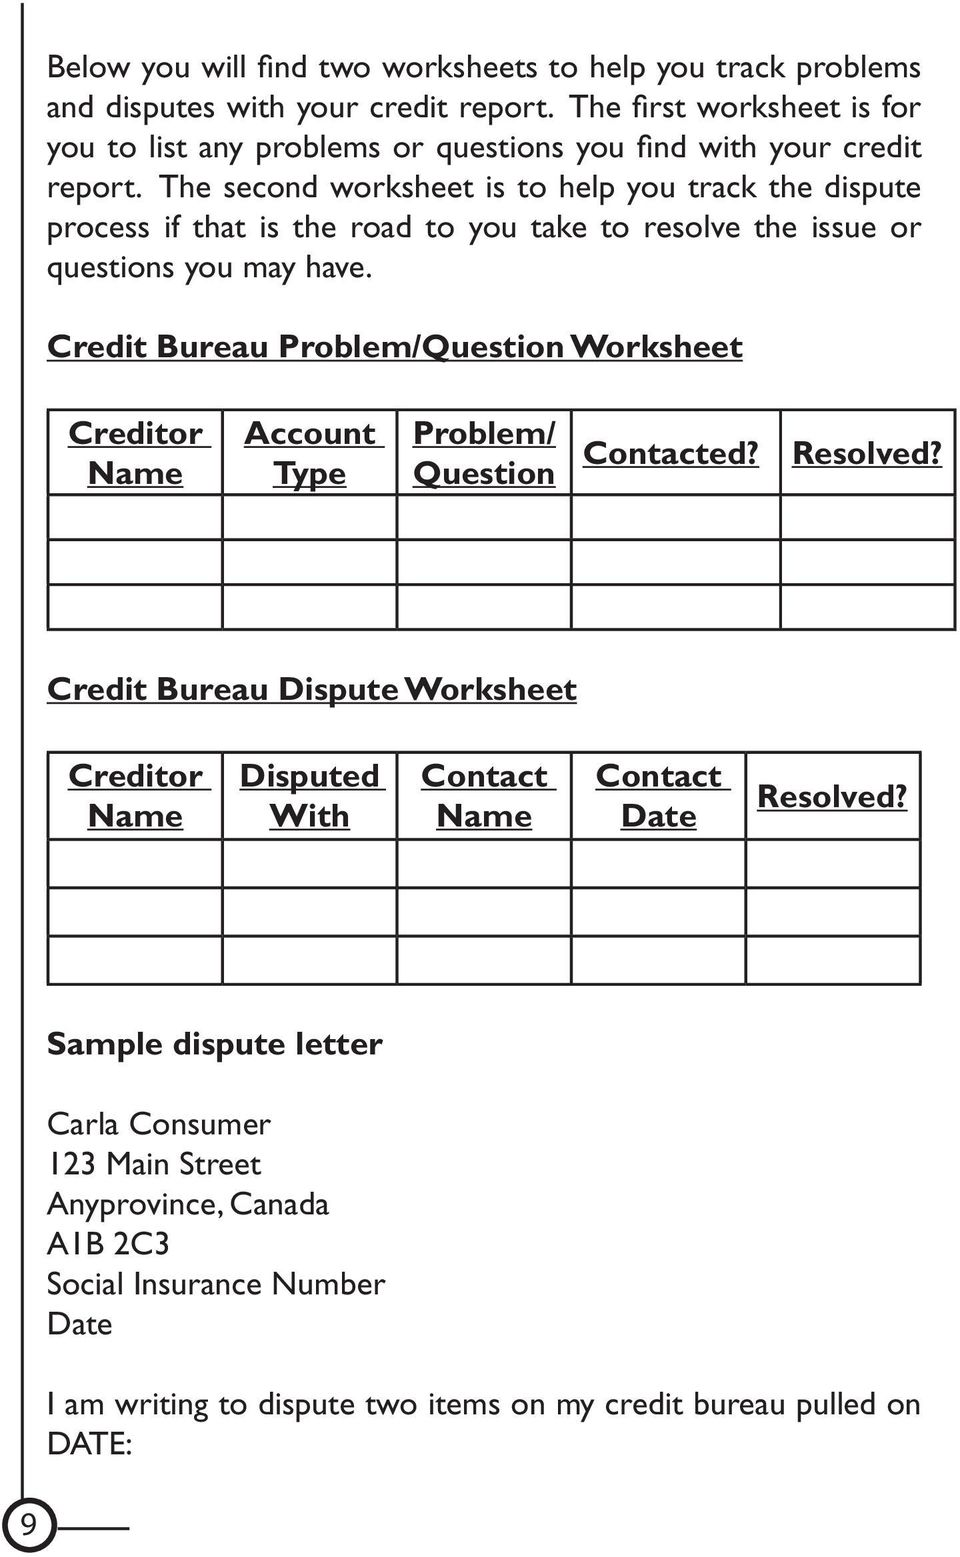 The second worksheet is to help you track the dispute process if that is the road to you take to resolve the issue or questions you may have.